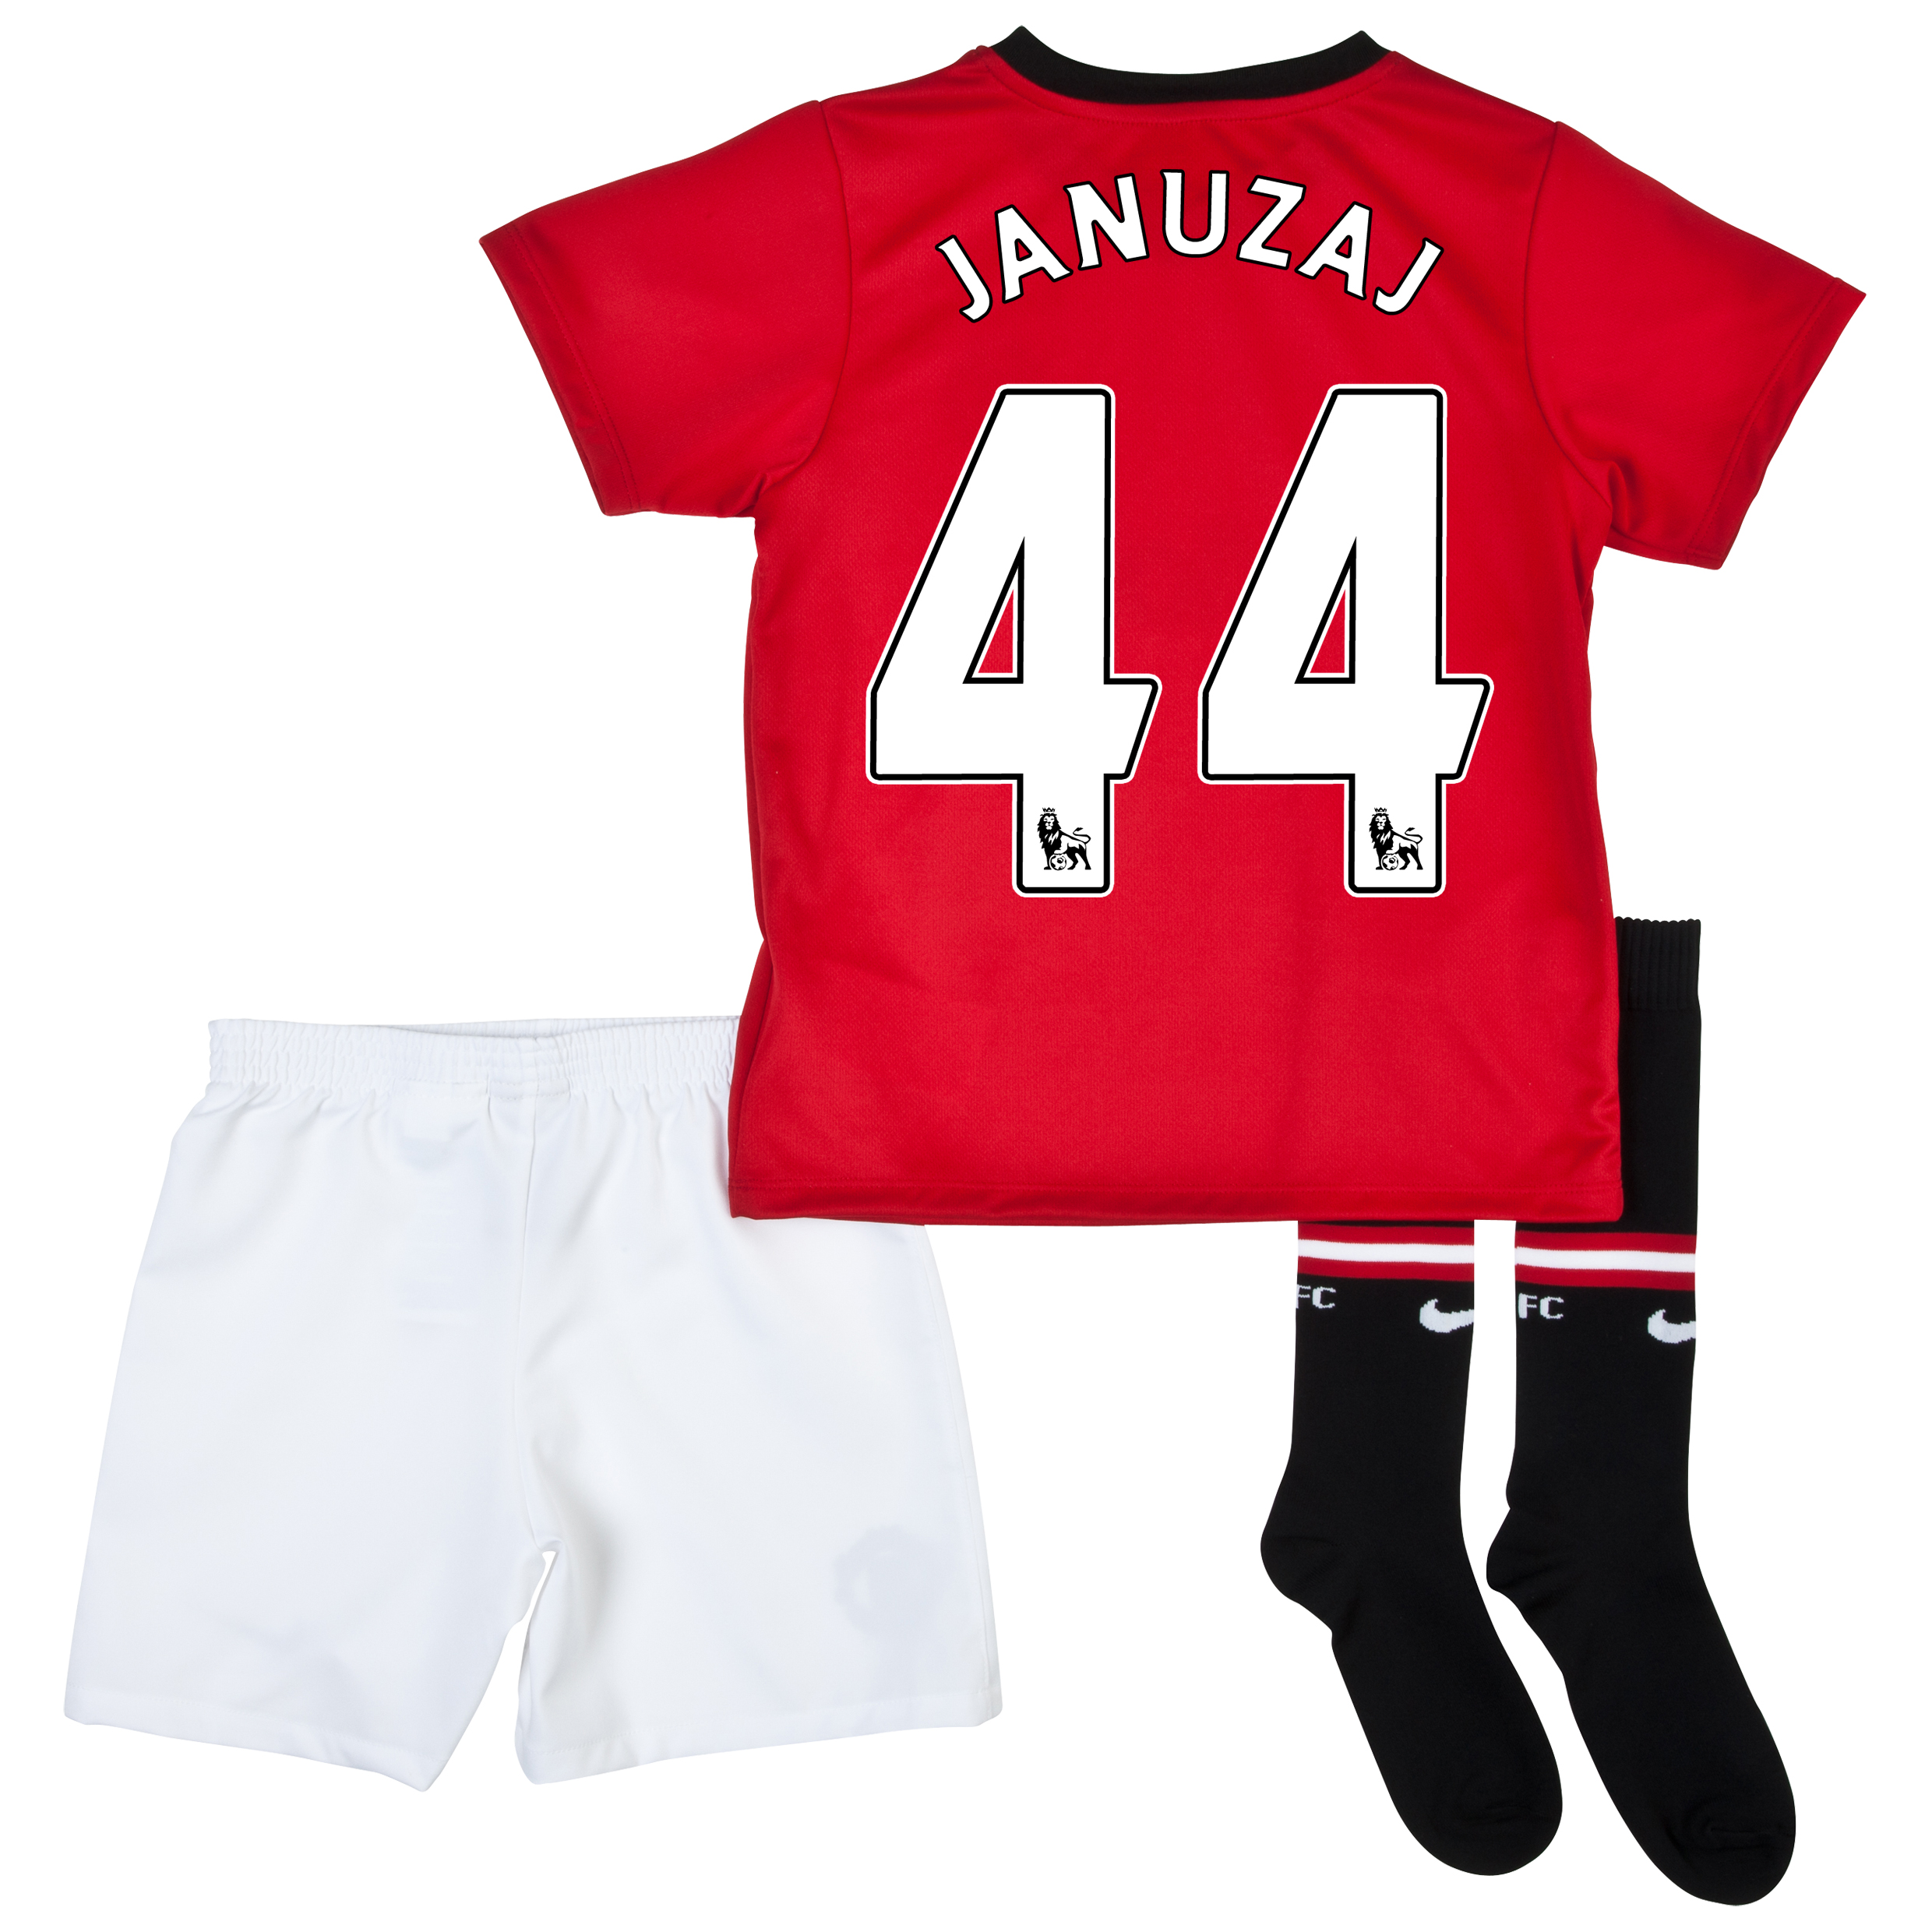 Manchester United Home Kit 2013/14 - Little Boys with Januzaj 44 printing